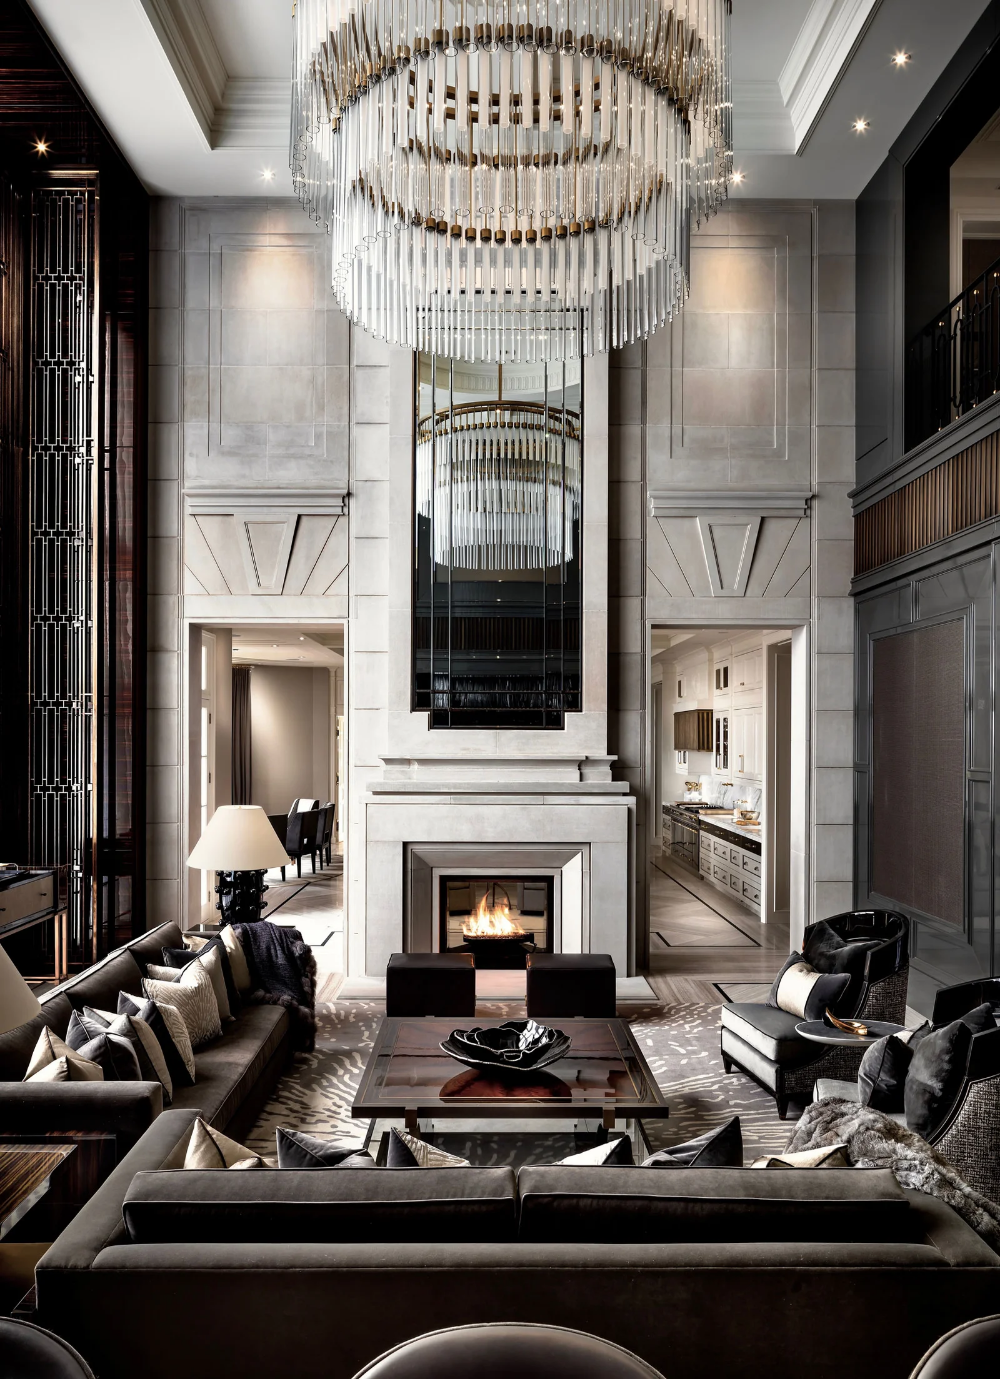 An Ultra-Luxurious $50 Million Canadian Home That's Anything But Rustic